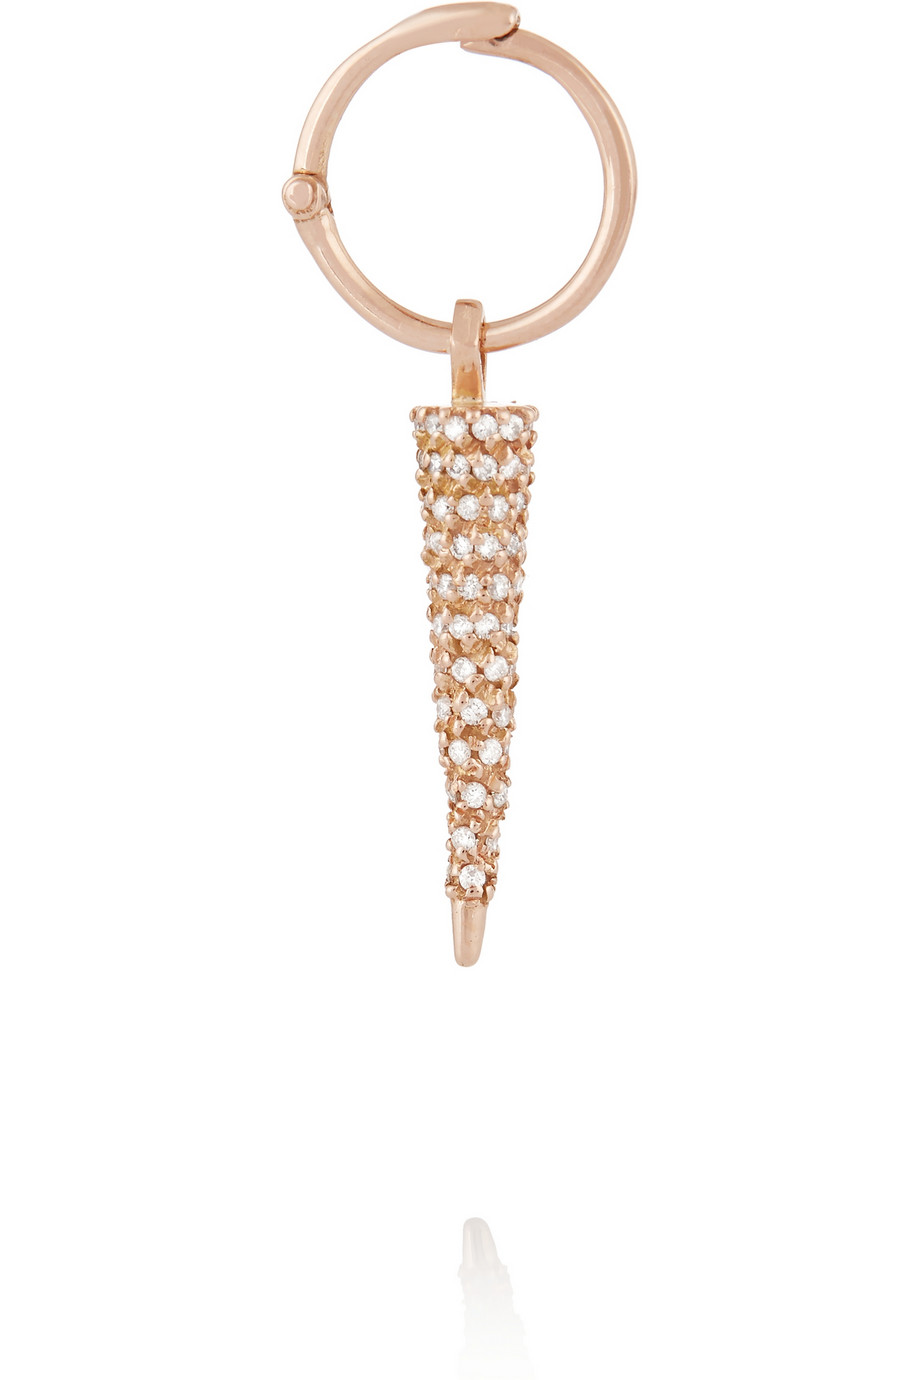 Wendy Nichol  14-karat rose gold diamond earrings, $6,870,  available at Net-A-Porter .